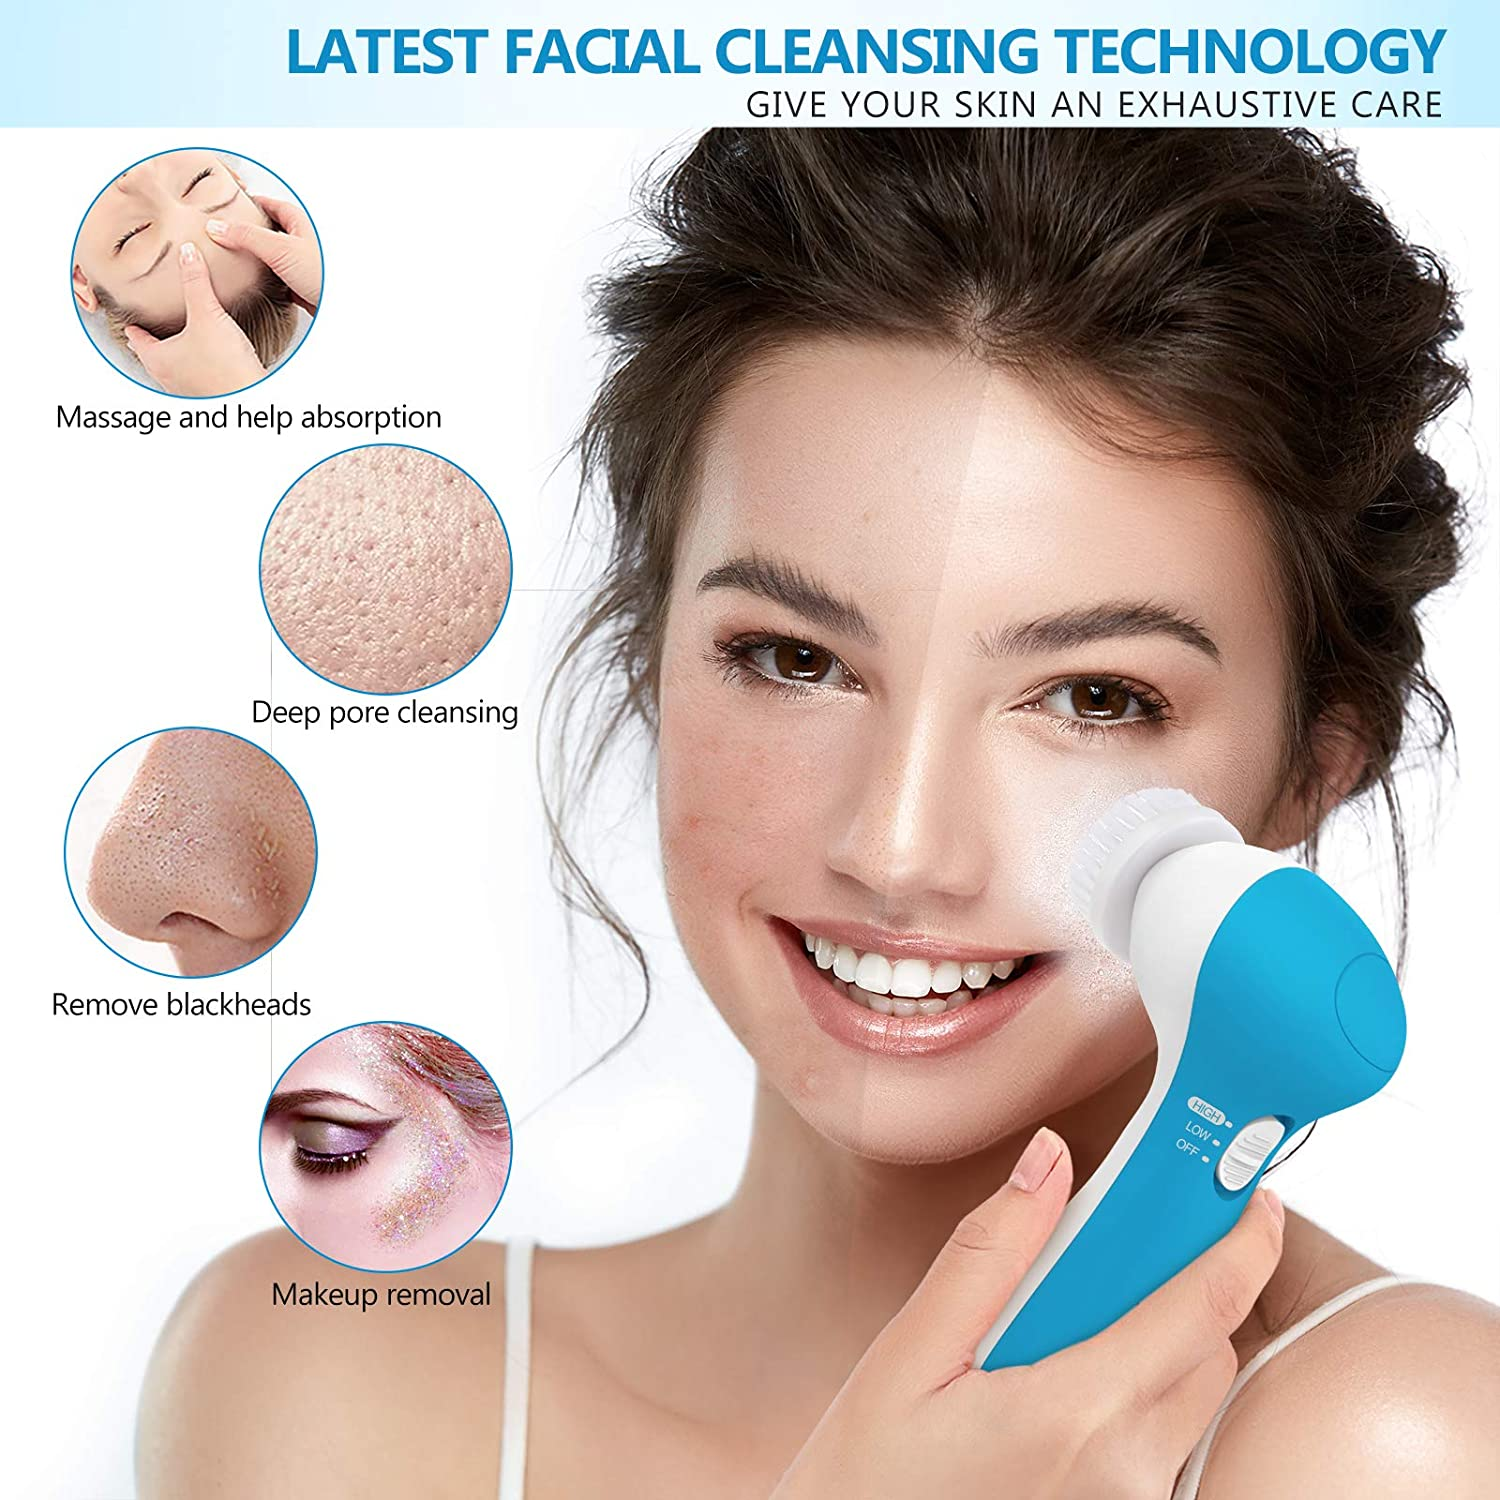 Facial Cleansing Machine, Waterproof Facial Cleansing Brush with 7 Exfoliating Brush Heads (Sky Blue)